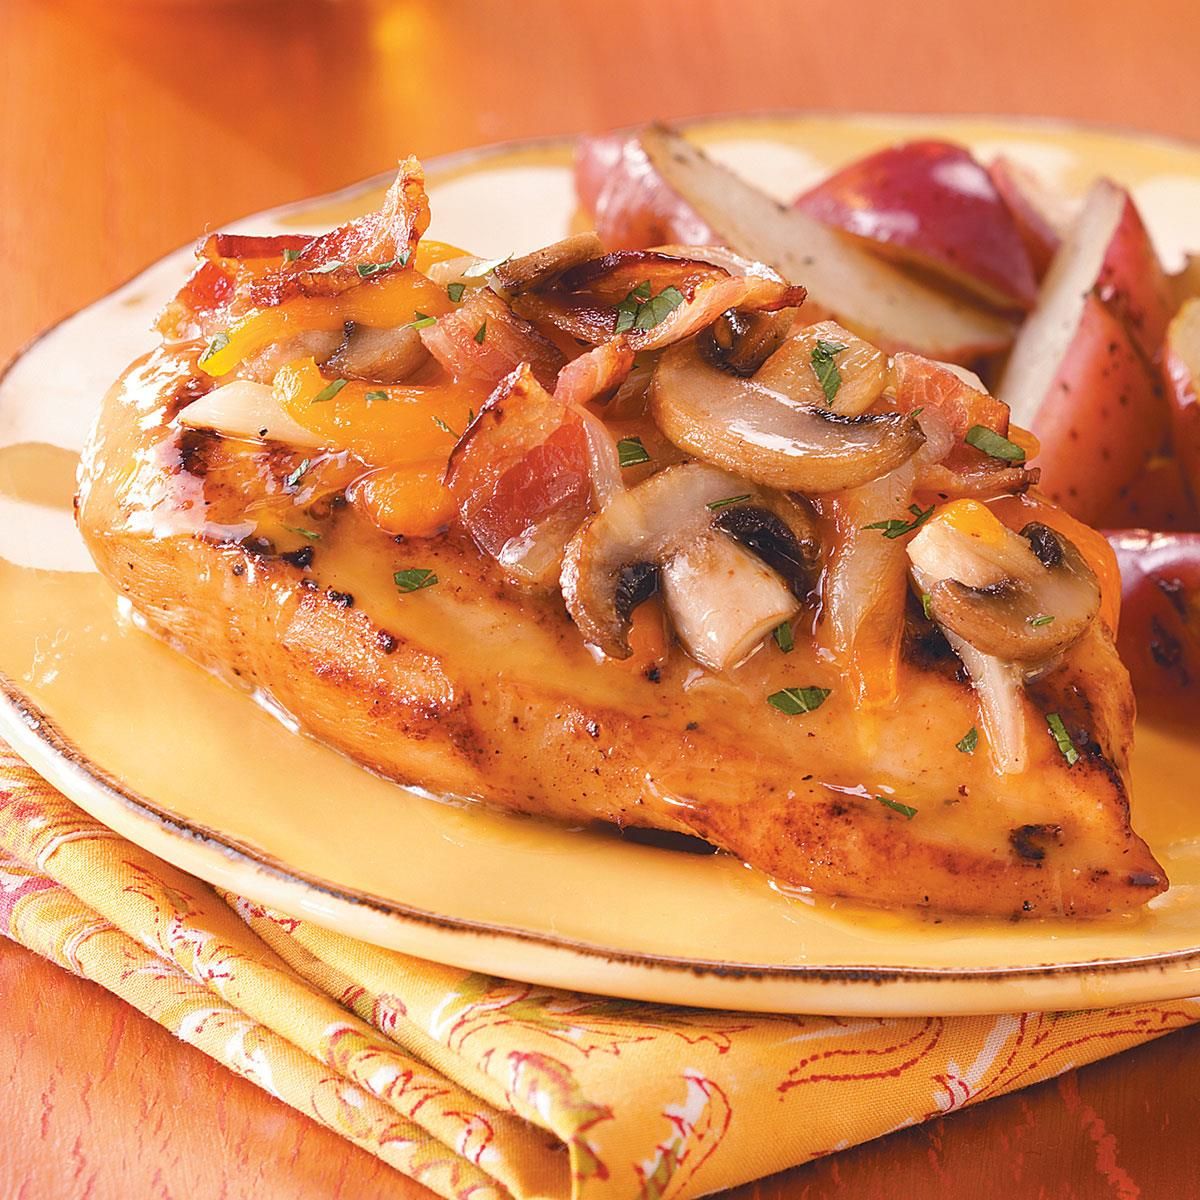 Chicken Rcipes: Bacon-Cheese Topped Chicken Recipe